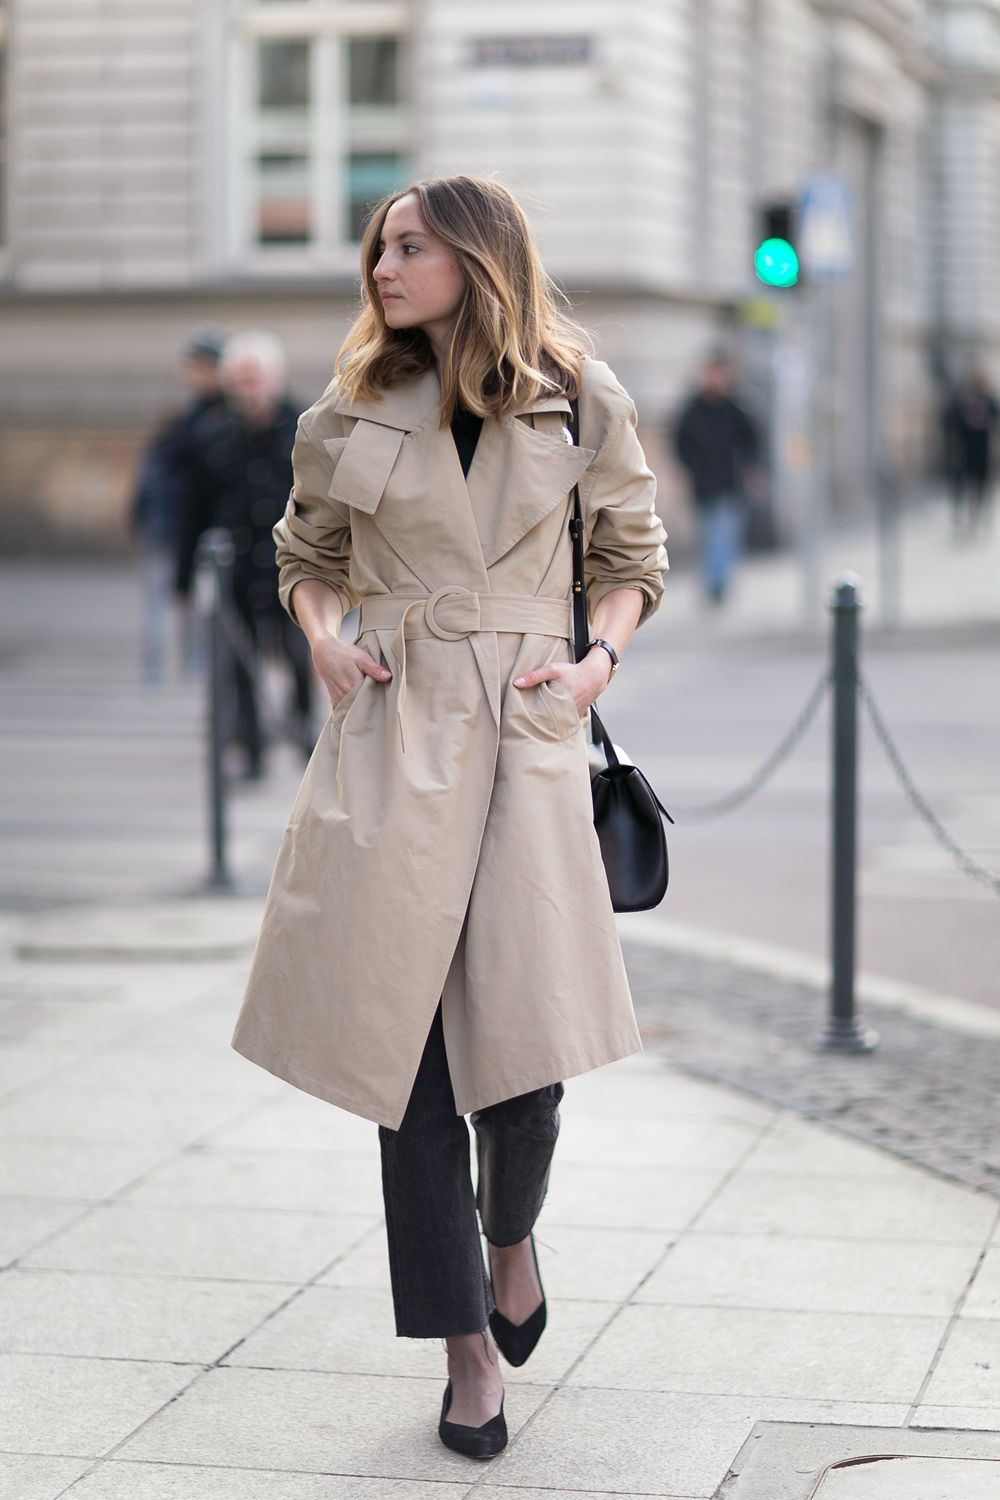 9bbea182d9 SPRING LOOK - FashionMugging | My looks | Spring looks, Coats for ...